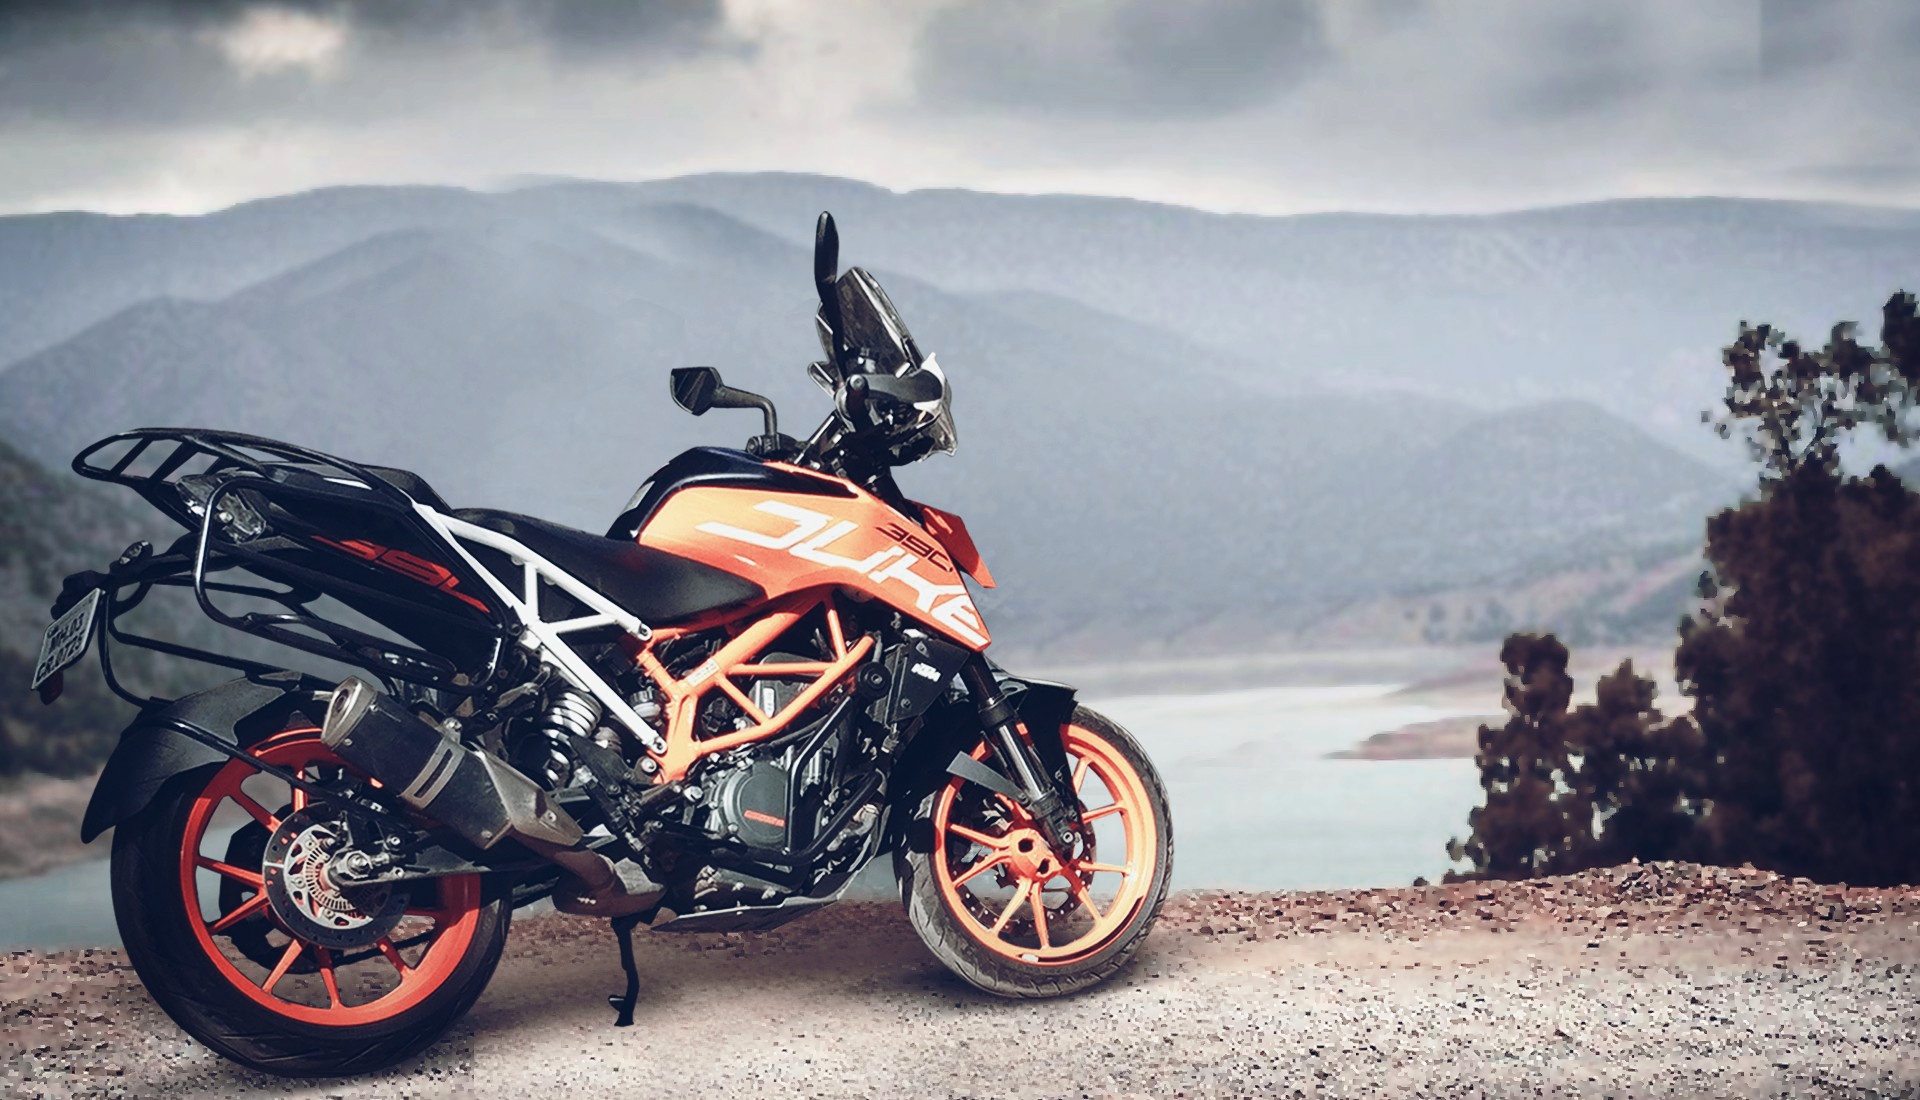 KTM Duke 390 Accessories online In India